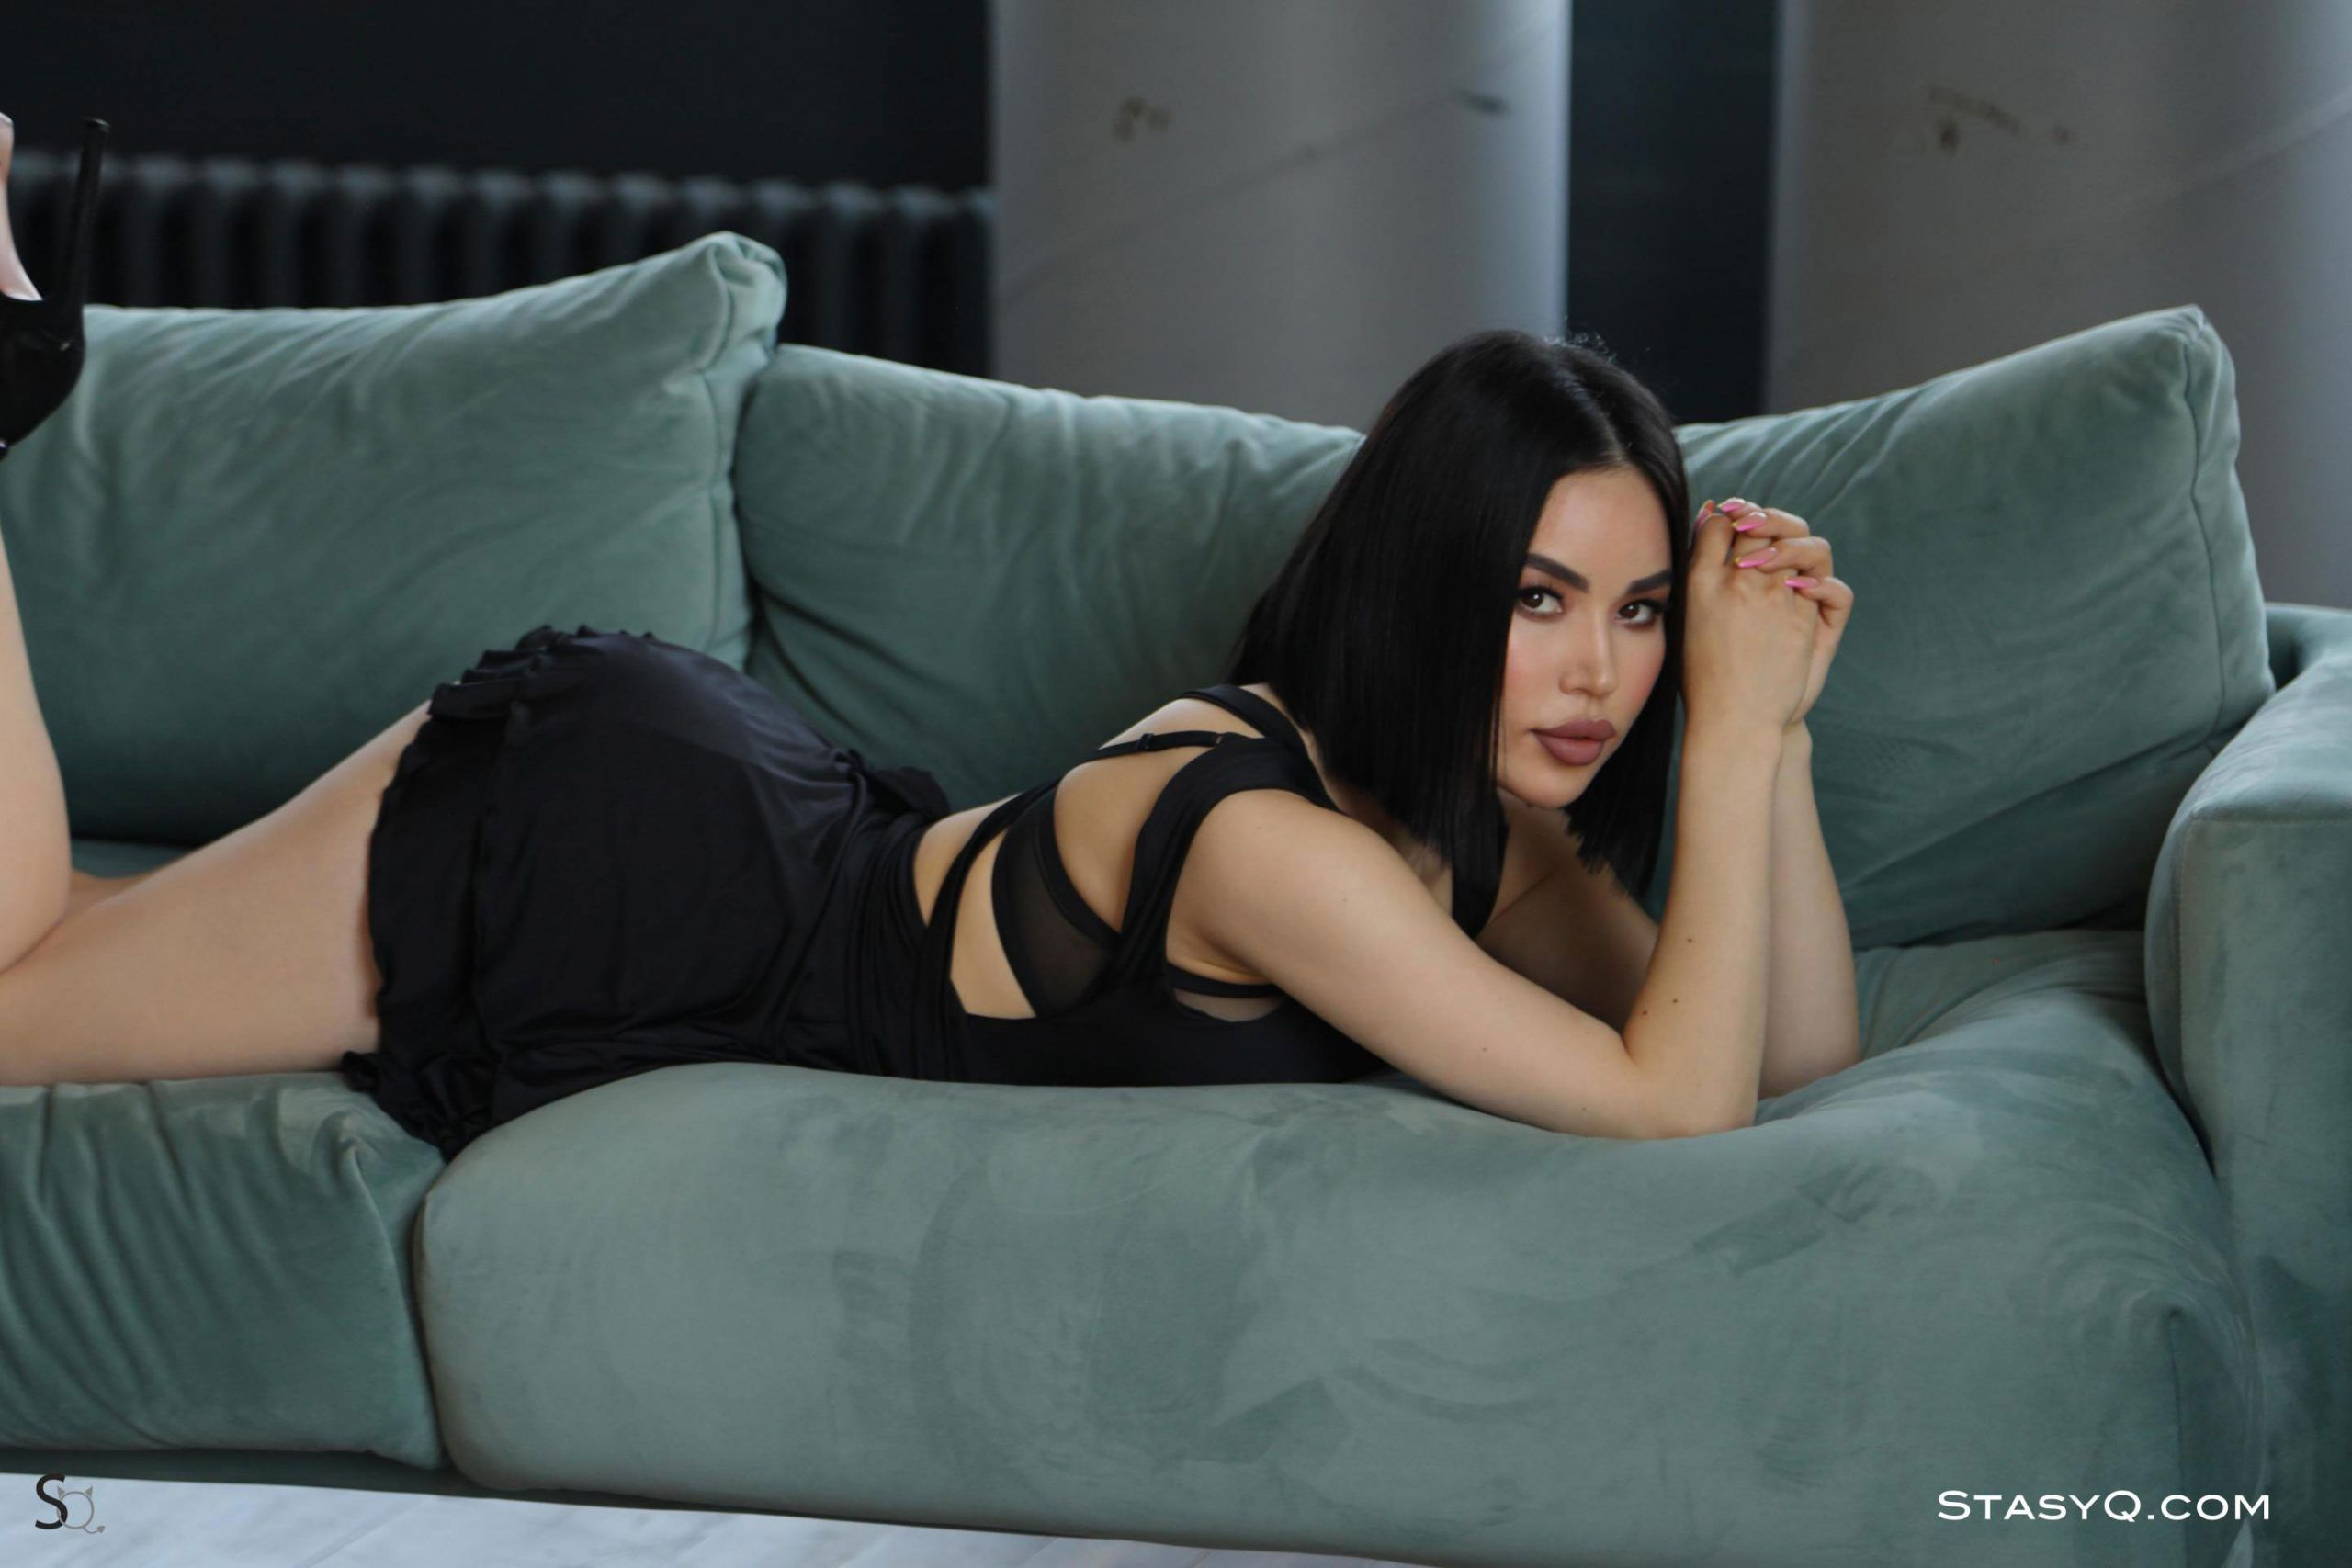 Babe AiculQ gives a stylish photo shoot for StasyQ   Daily Girls @ Female Update